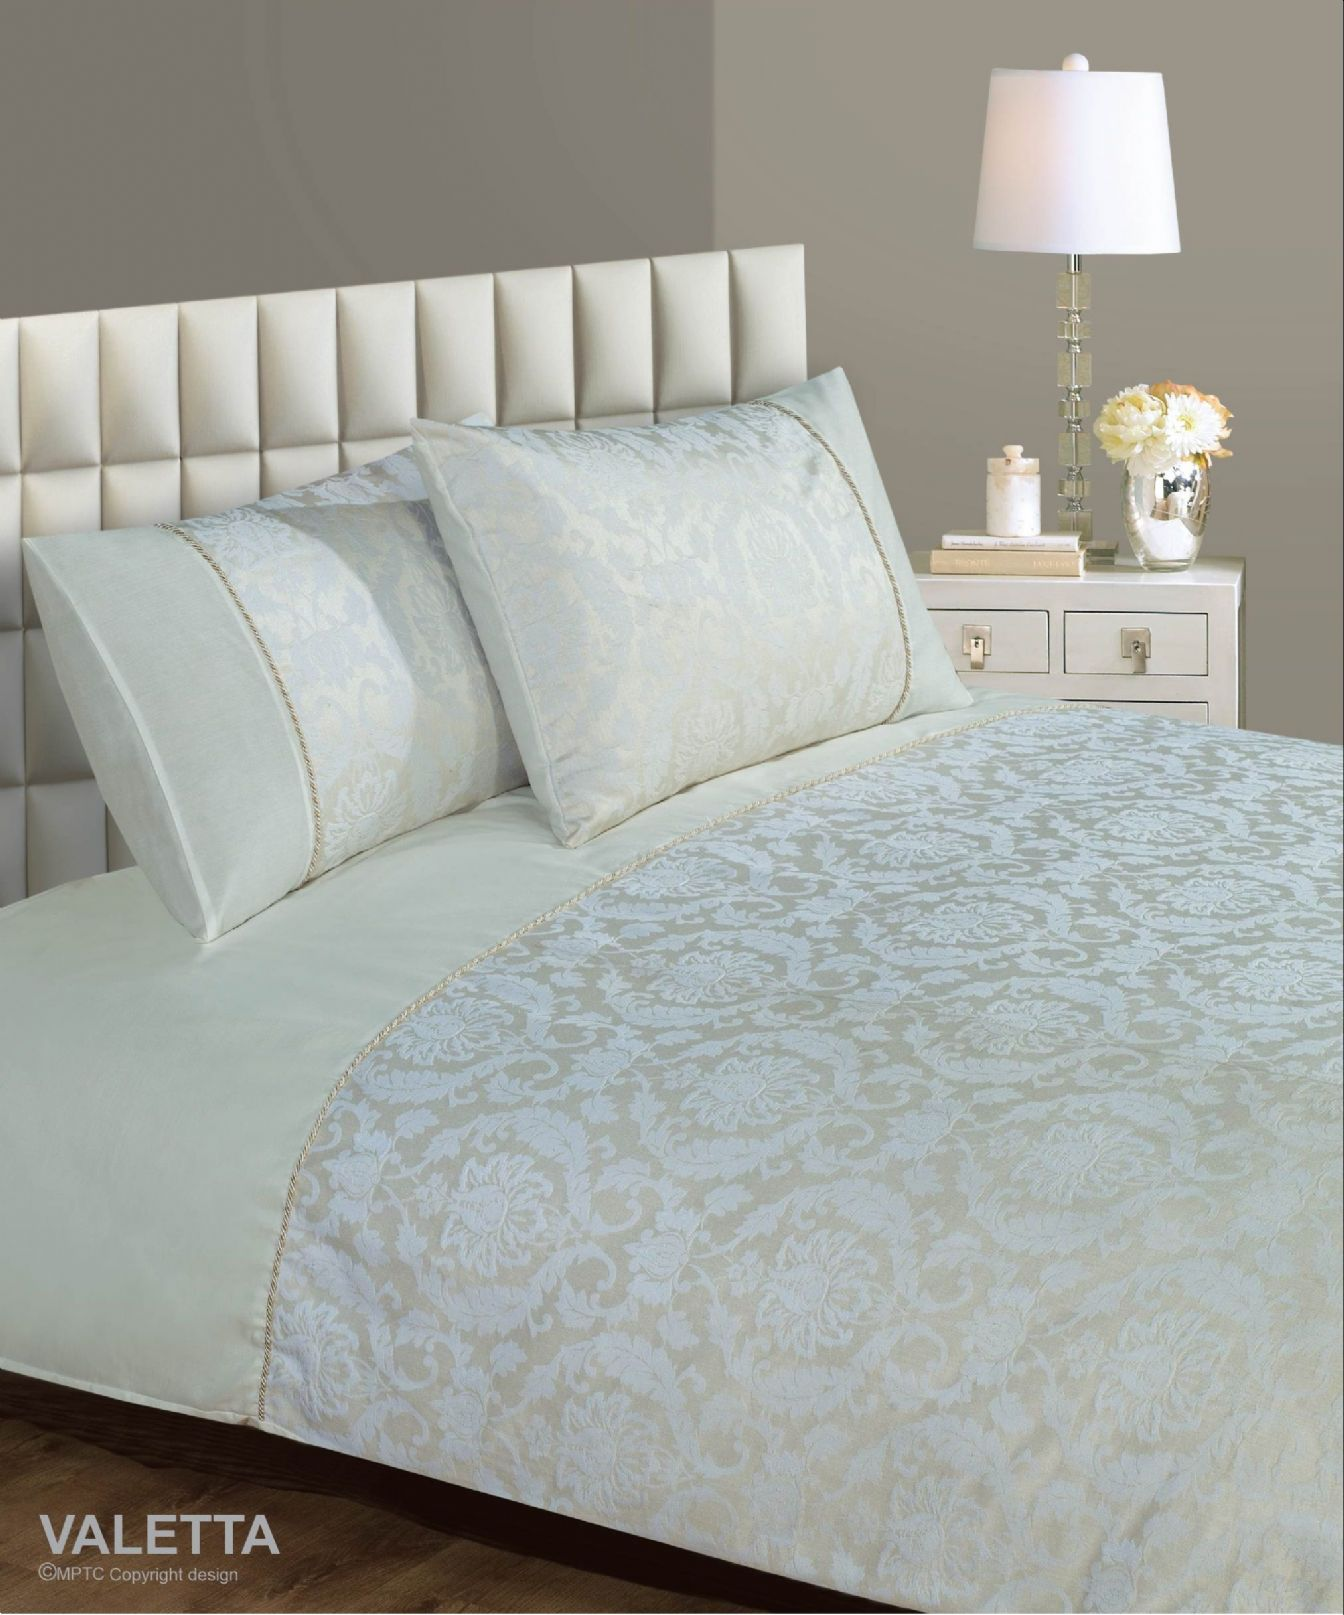 Fascinating damask bedding for bed decorating ideas with damask bedding set and damask crib bedding